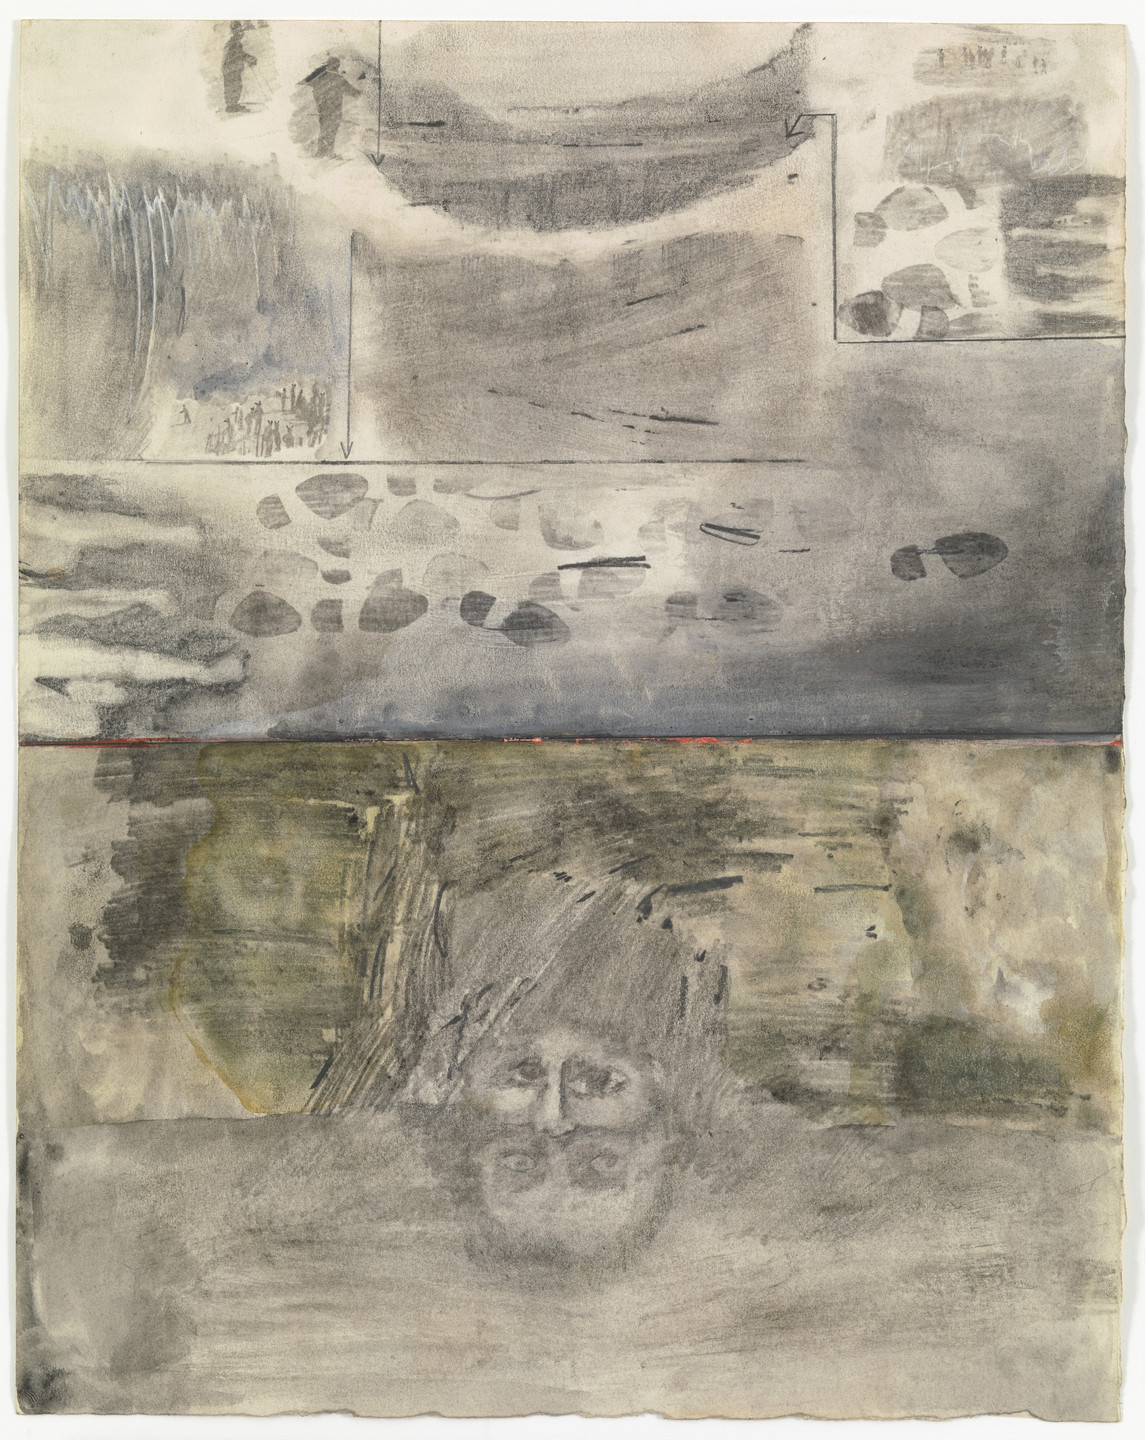 Robert Rauschenberg. Canto XVIII: Circle Eight, Malebolge, The Evil Ditches, The Fraudulent and Malicious: Bolgia 1, The Panderers and Seducers; Bolgia 2, The Flatterers from the series Thirty-Four Illustrations for Dante's Inferno. (1959-60)